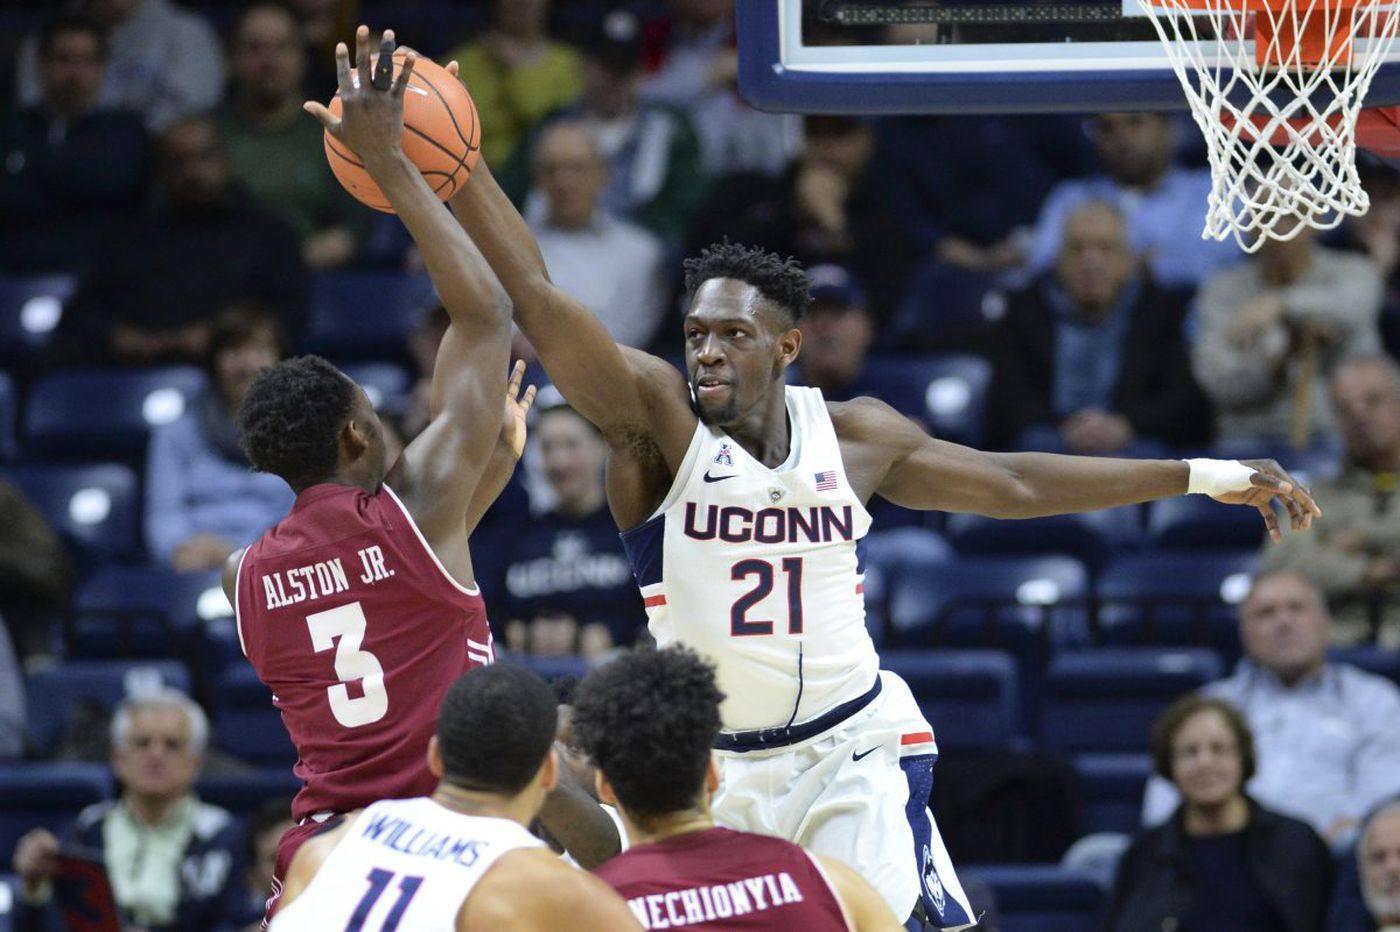 Temple's second-half struggles lead to loss at UConn